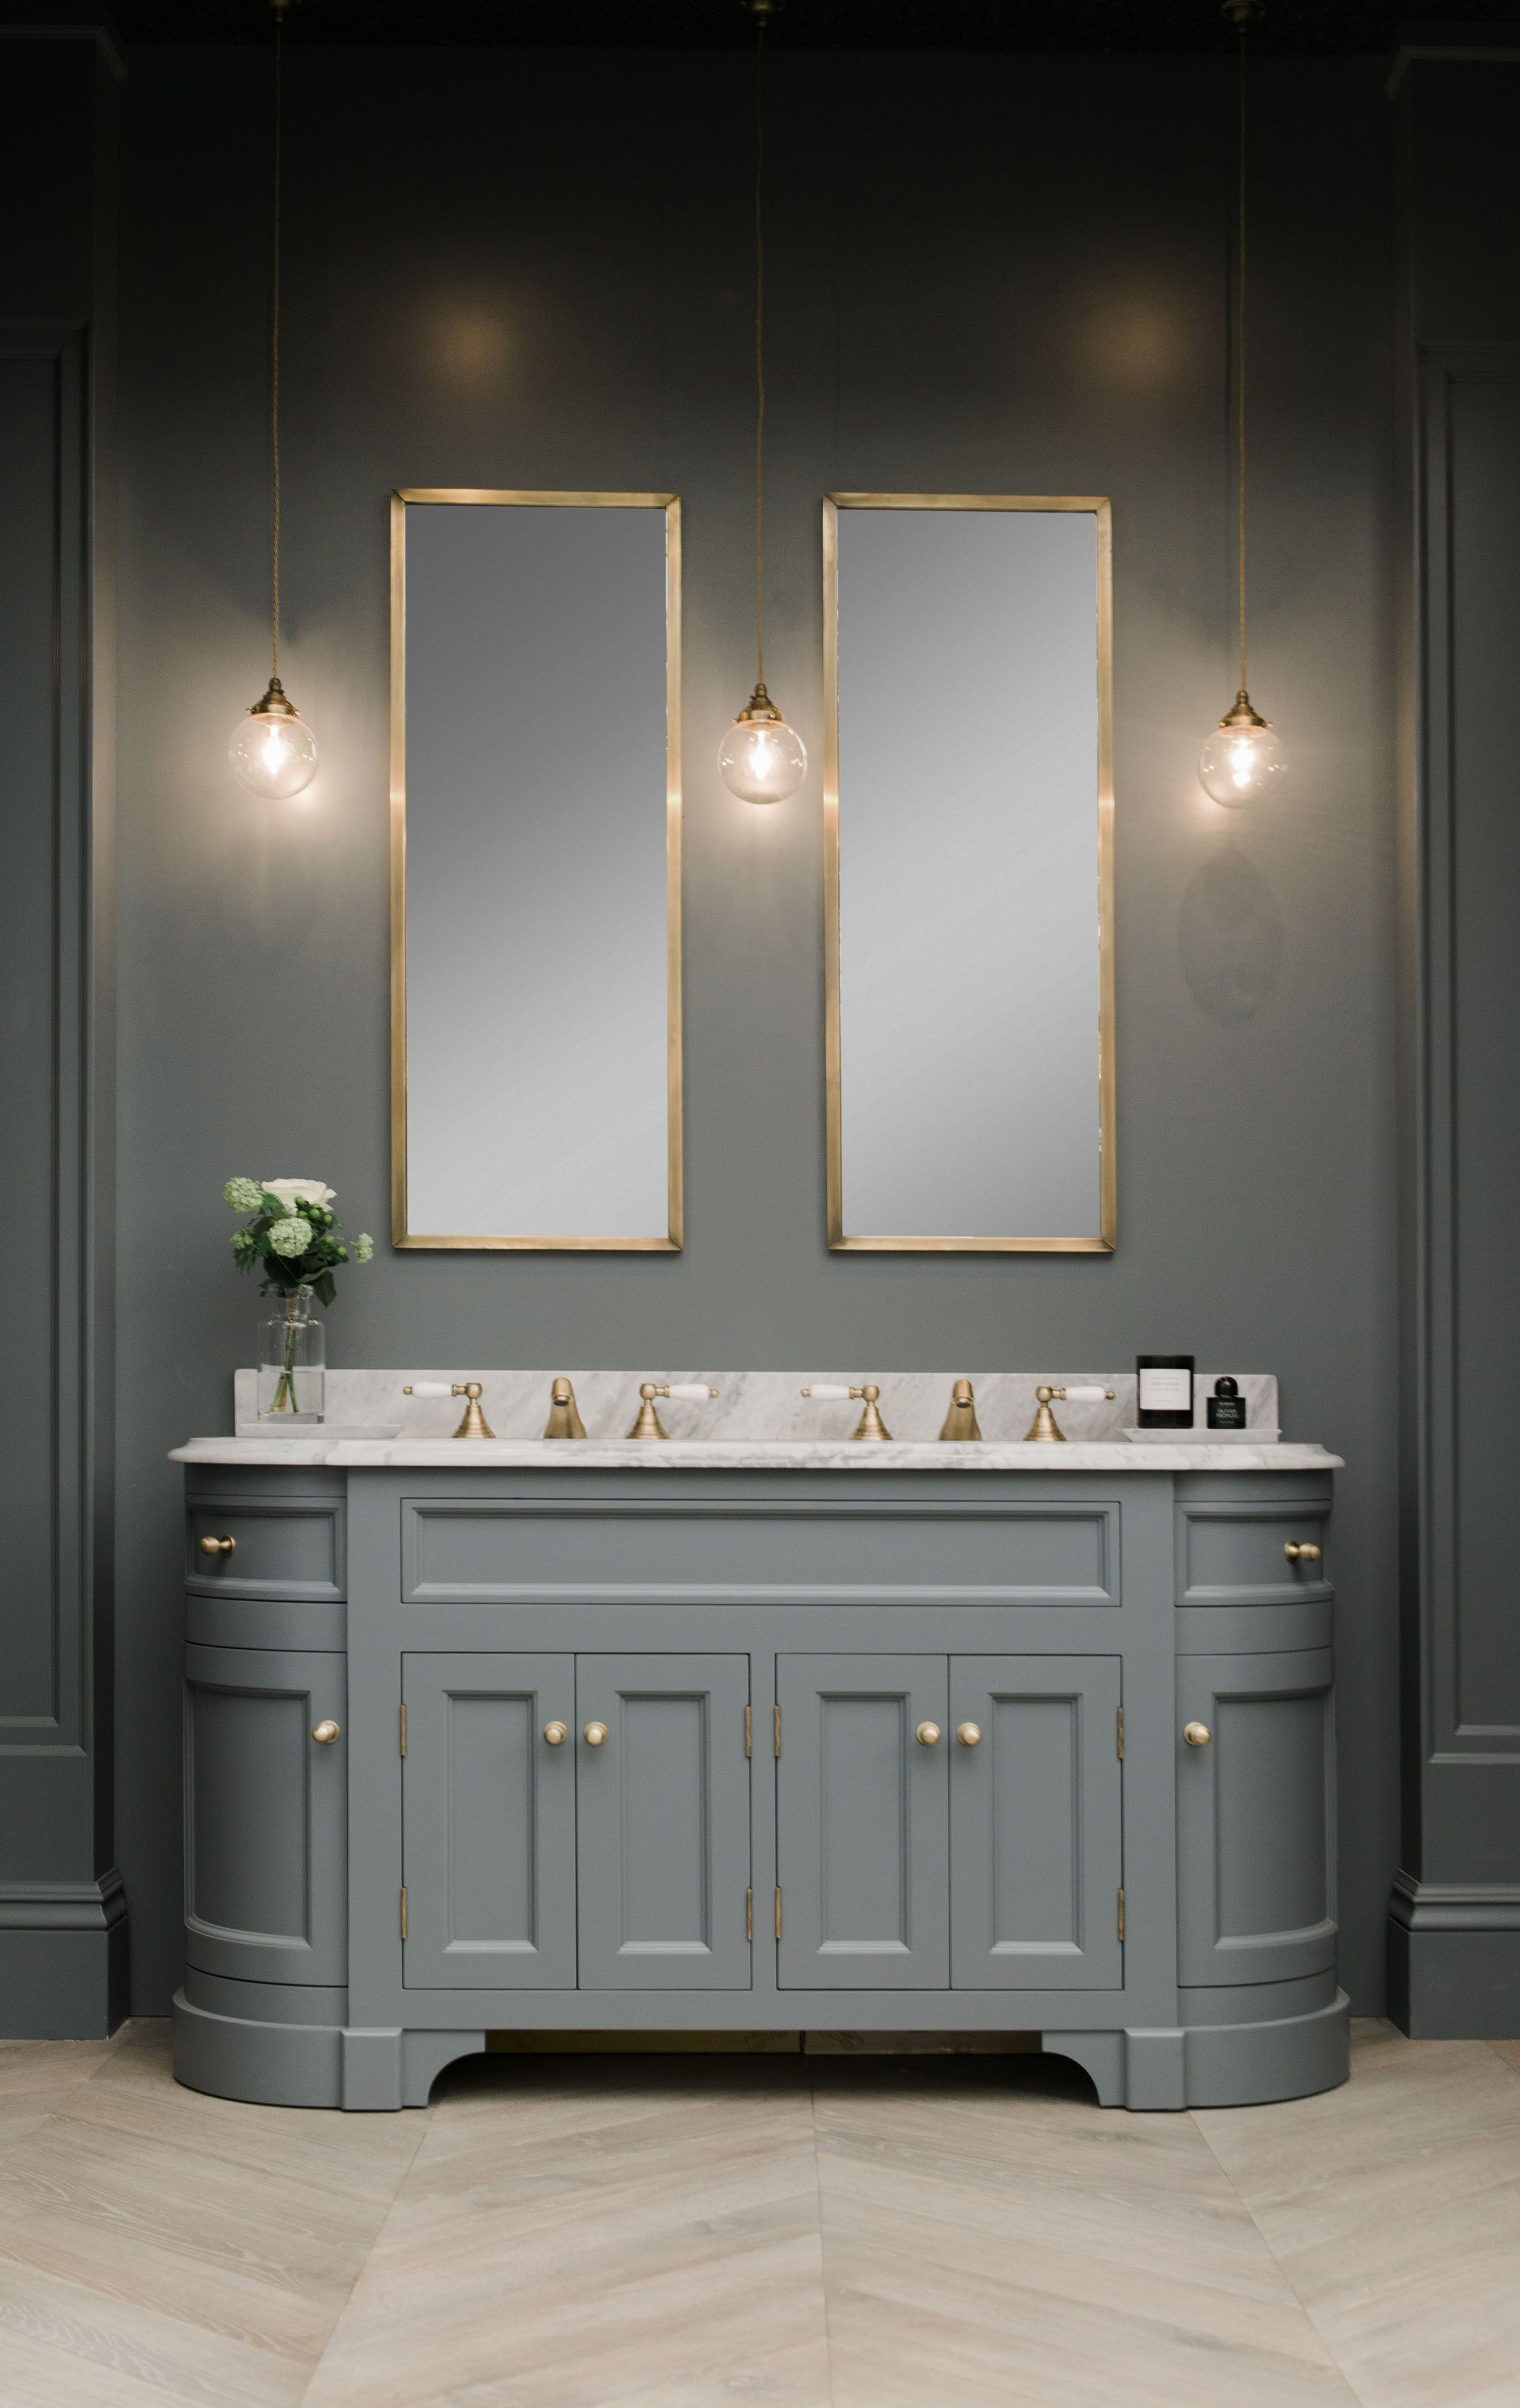 Double stratford vanity unit painted in btwn dog and wolf paint and paper library marble vanity - Marble vanity units ...